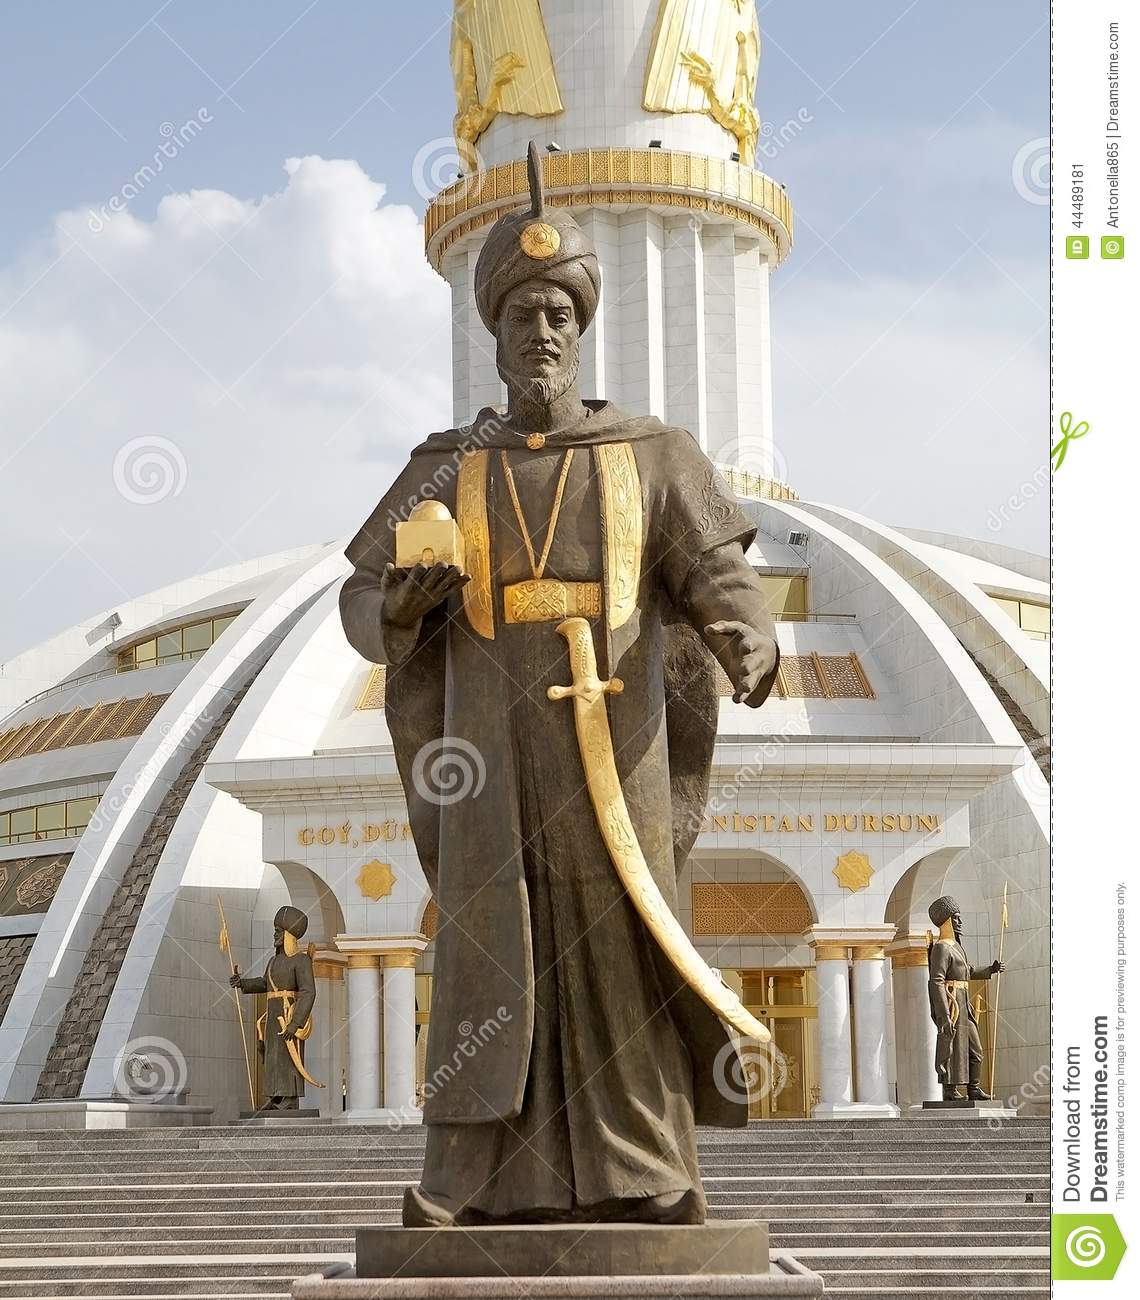 Turkmenistan Stock Photo - Image: 44489181